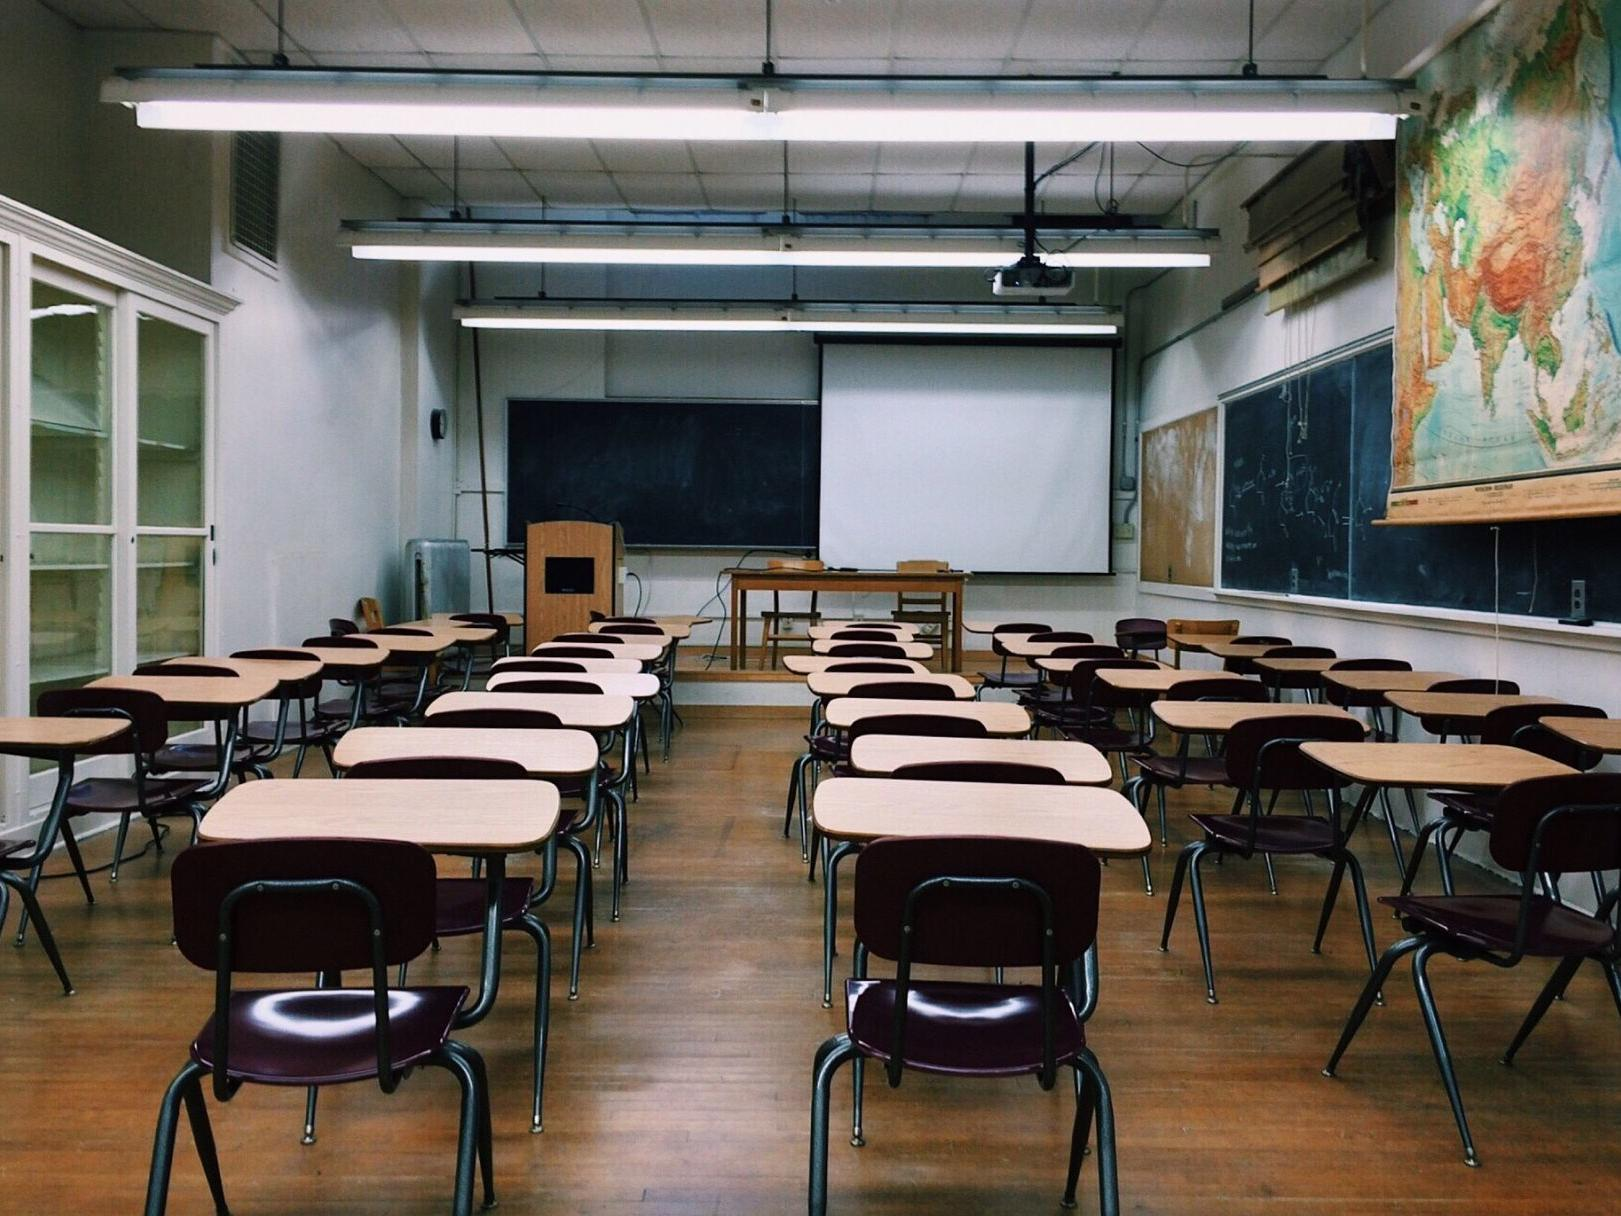 Guilford County Schools Calendar 2022.Guilford School Bonds Would Have To Wait Till 2022 If Deadline For November Ballot Missed Education Greensboro Com